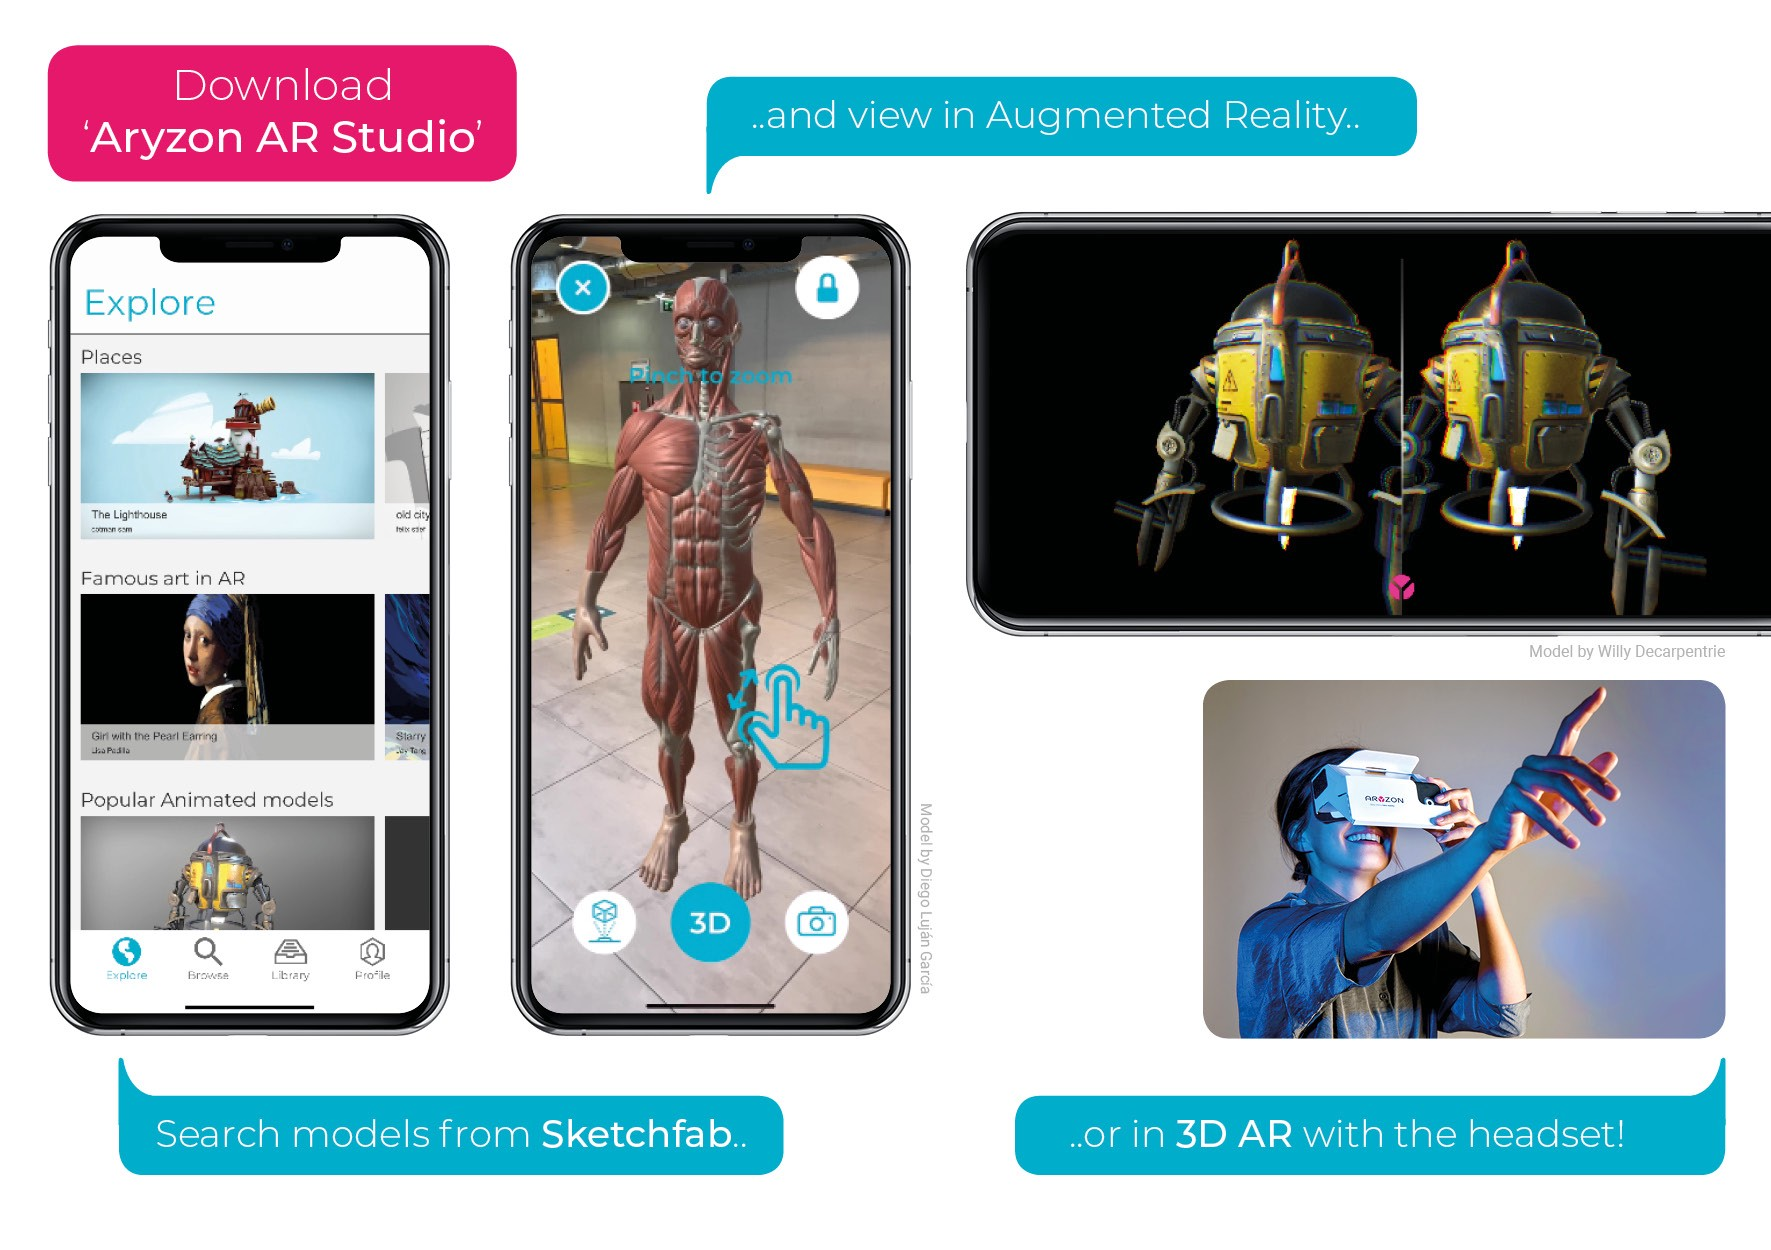 Aryzon AR Studio — import your own 3D models and view them in true